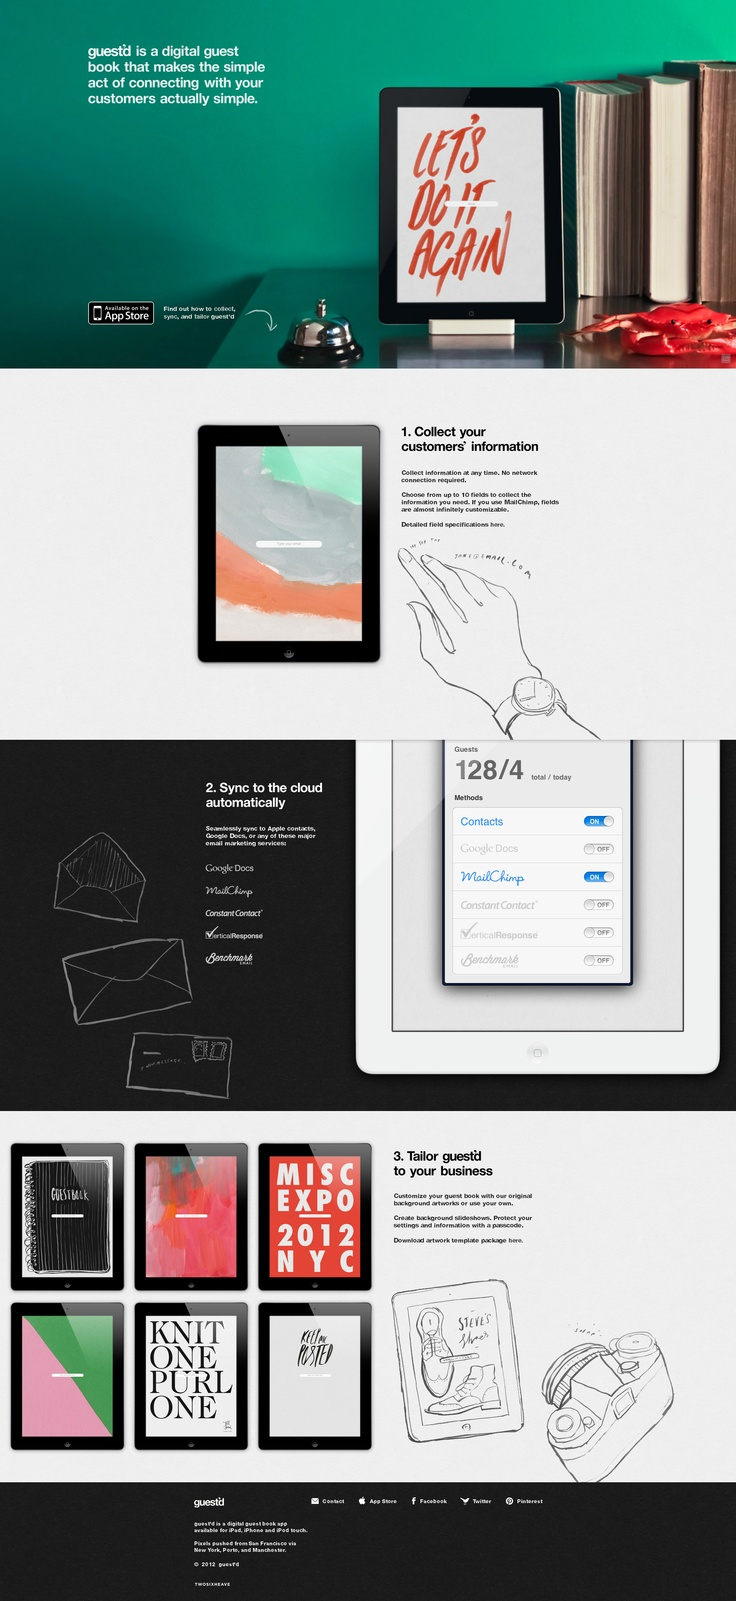 Web design for the Digital Guestbook App